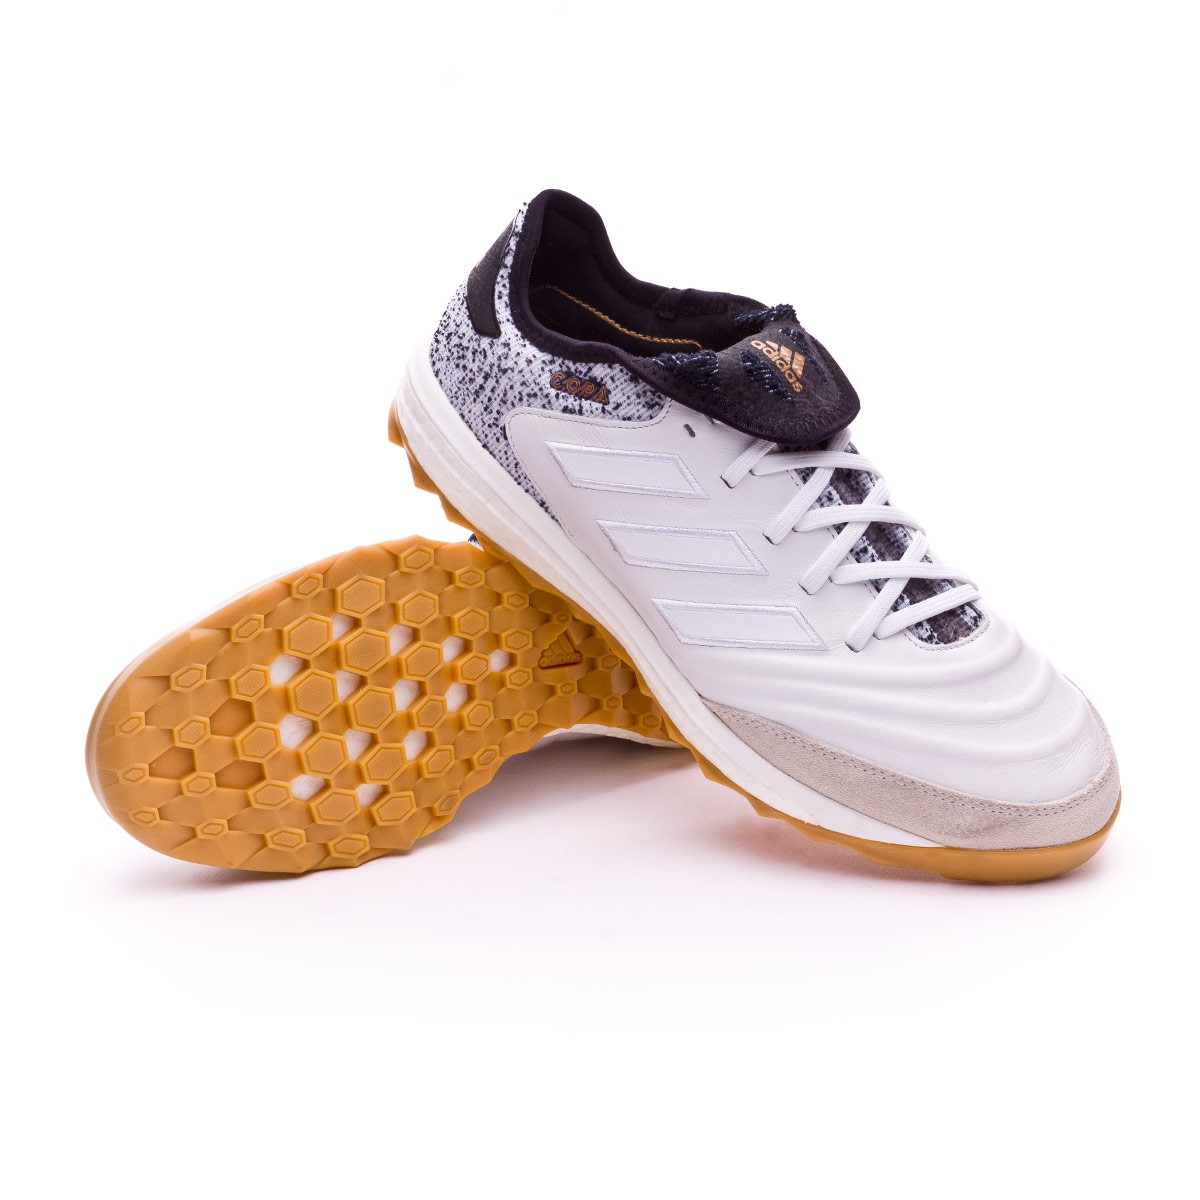 b277248090e Trainers adidas Copa Tango 18.1 TR Core black-Gold metallic ...